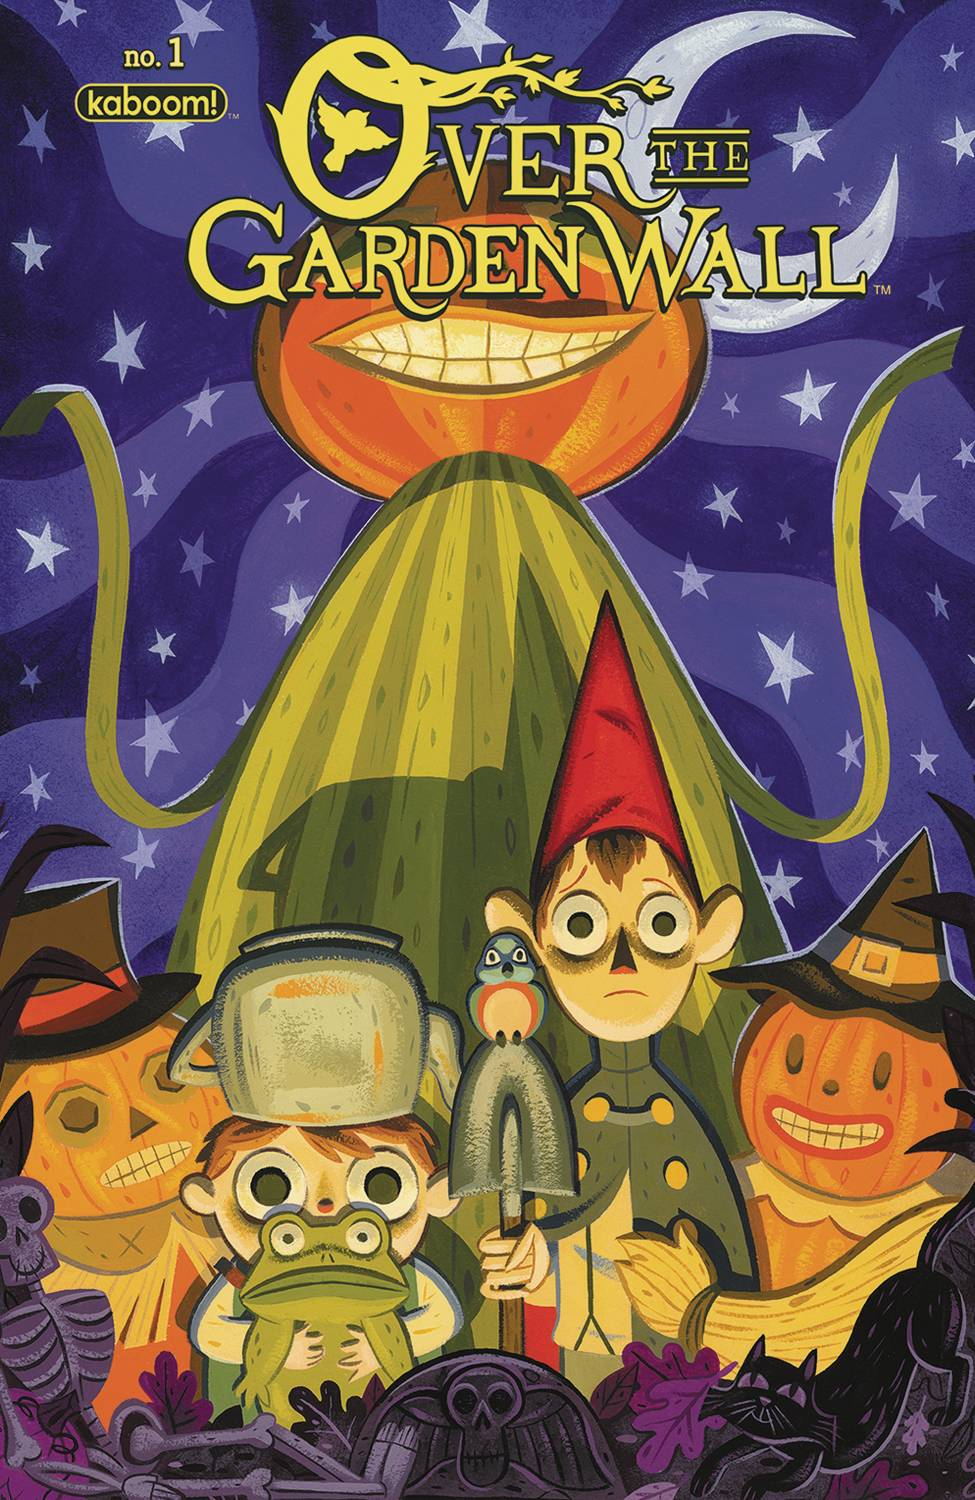 over the garden wall 1 2nd printing - Over The Garden Wall Poster